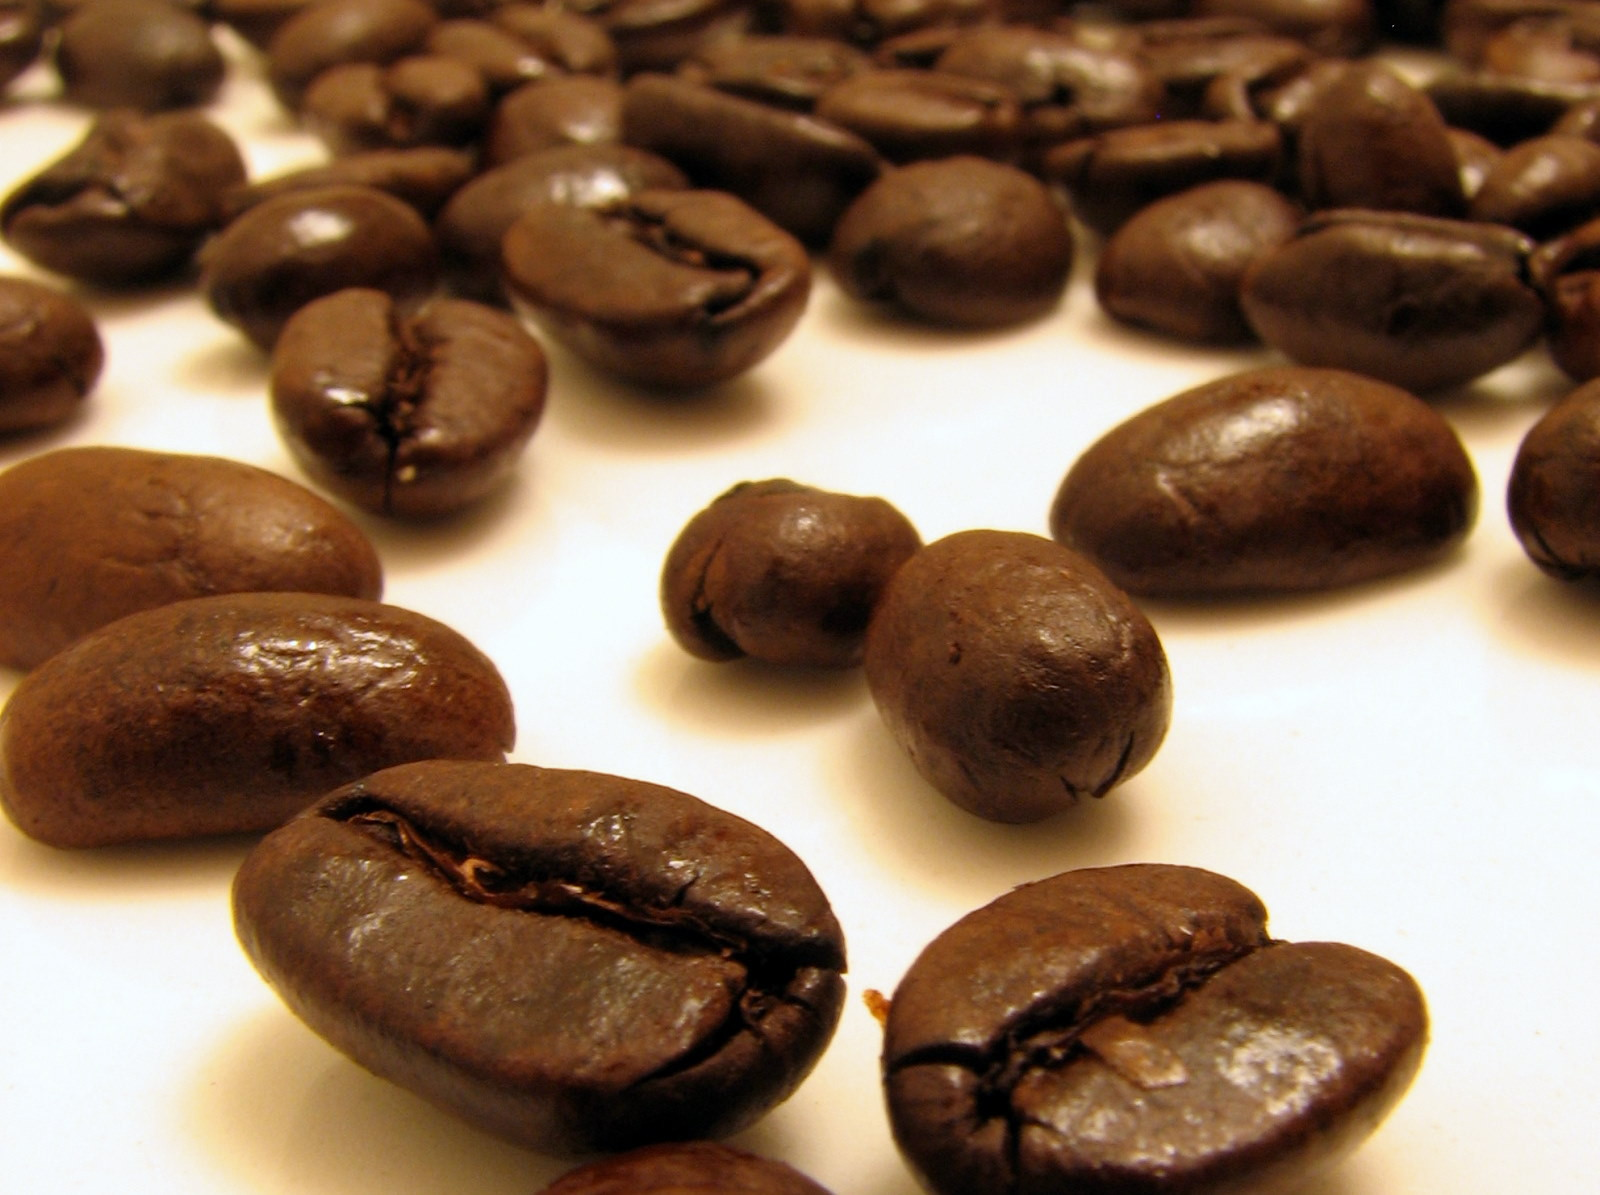 5 Reasons to You Should ONLY Buy Organic, Fair-Trade Coffee